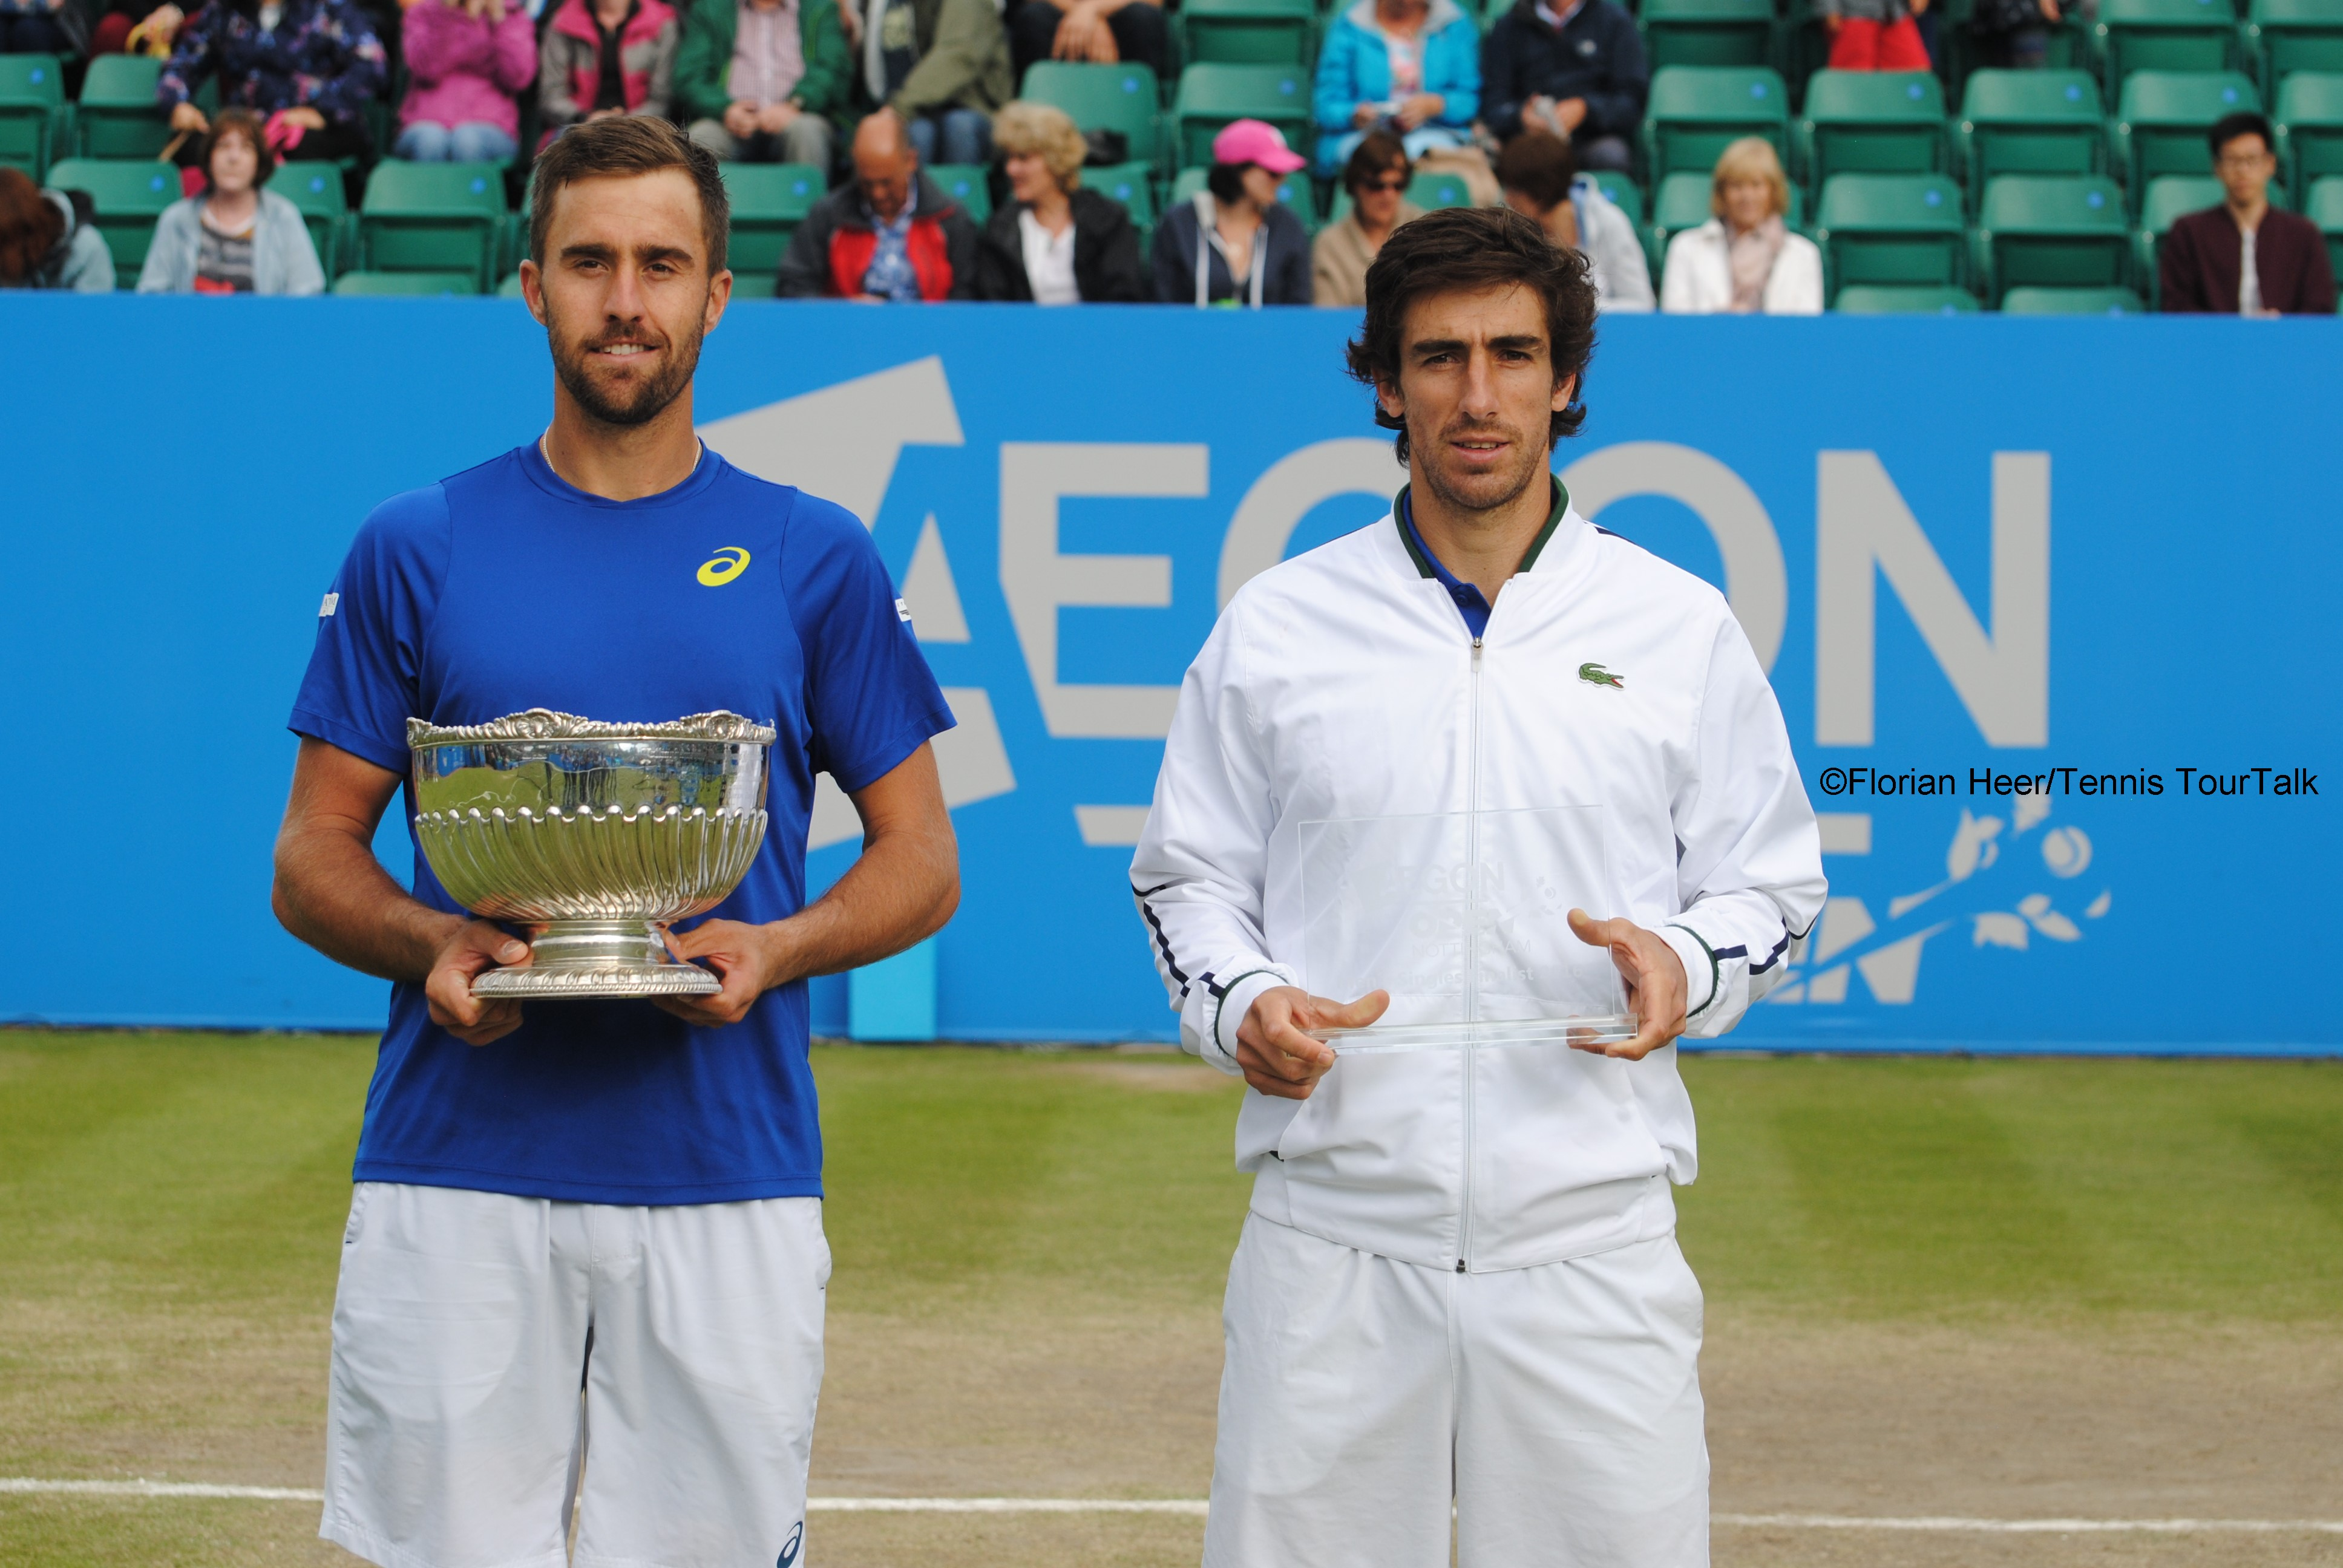 Johnson Captures Maiden Title In Nottingham Tennis TourTalk